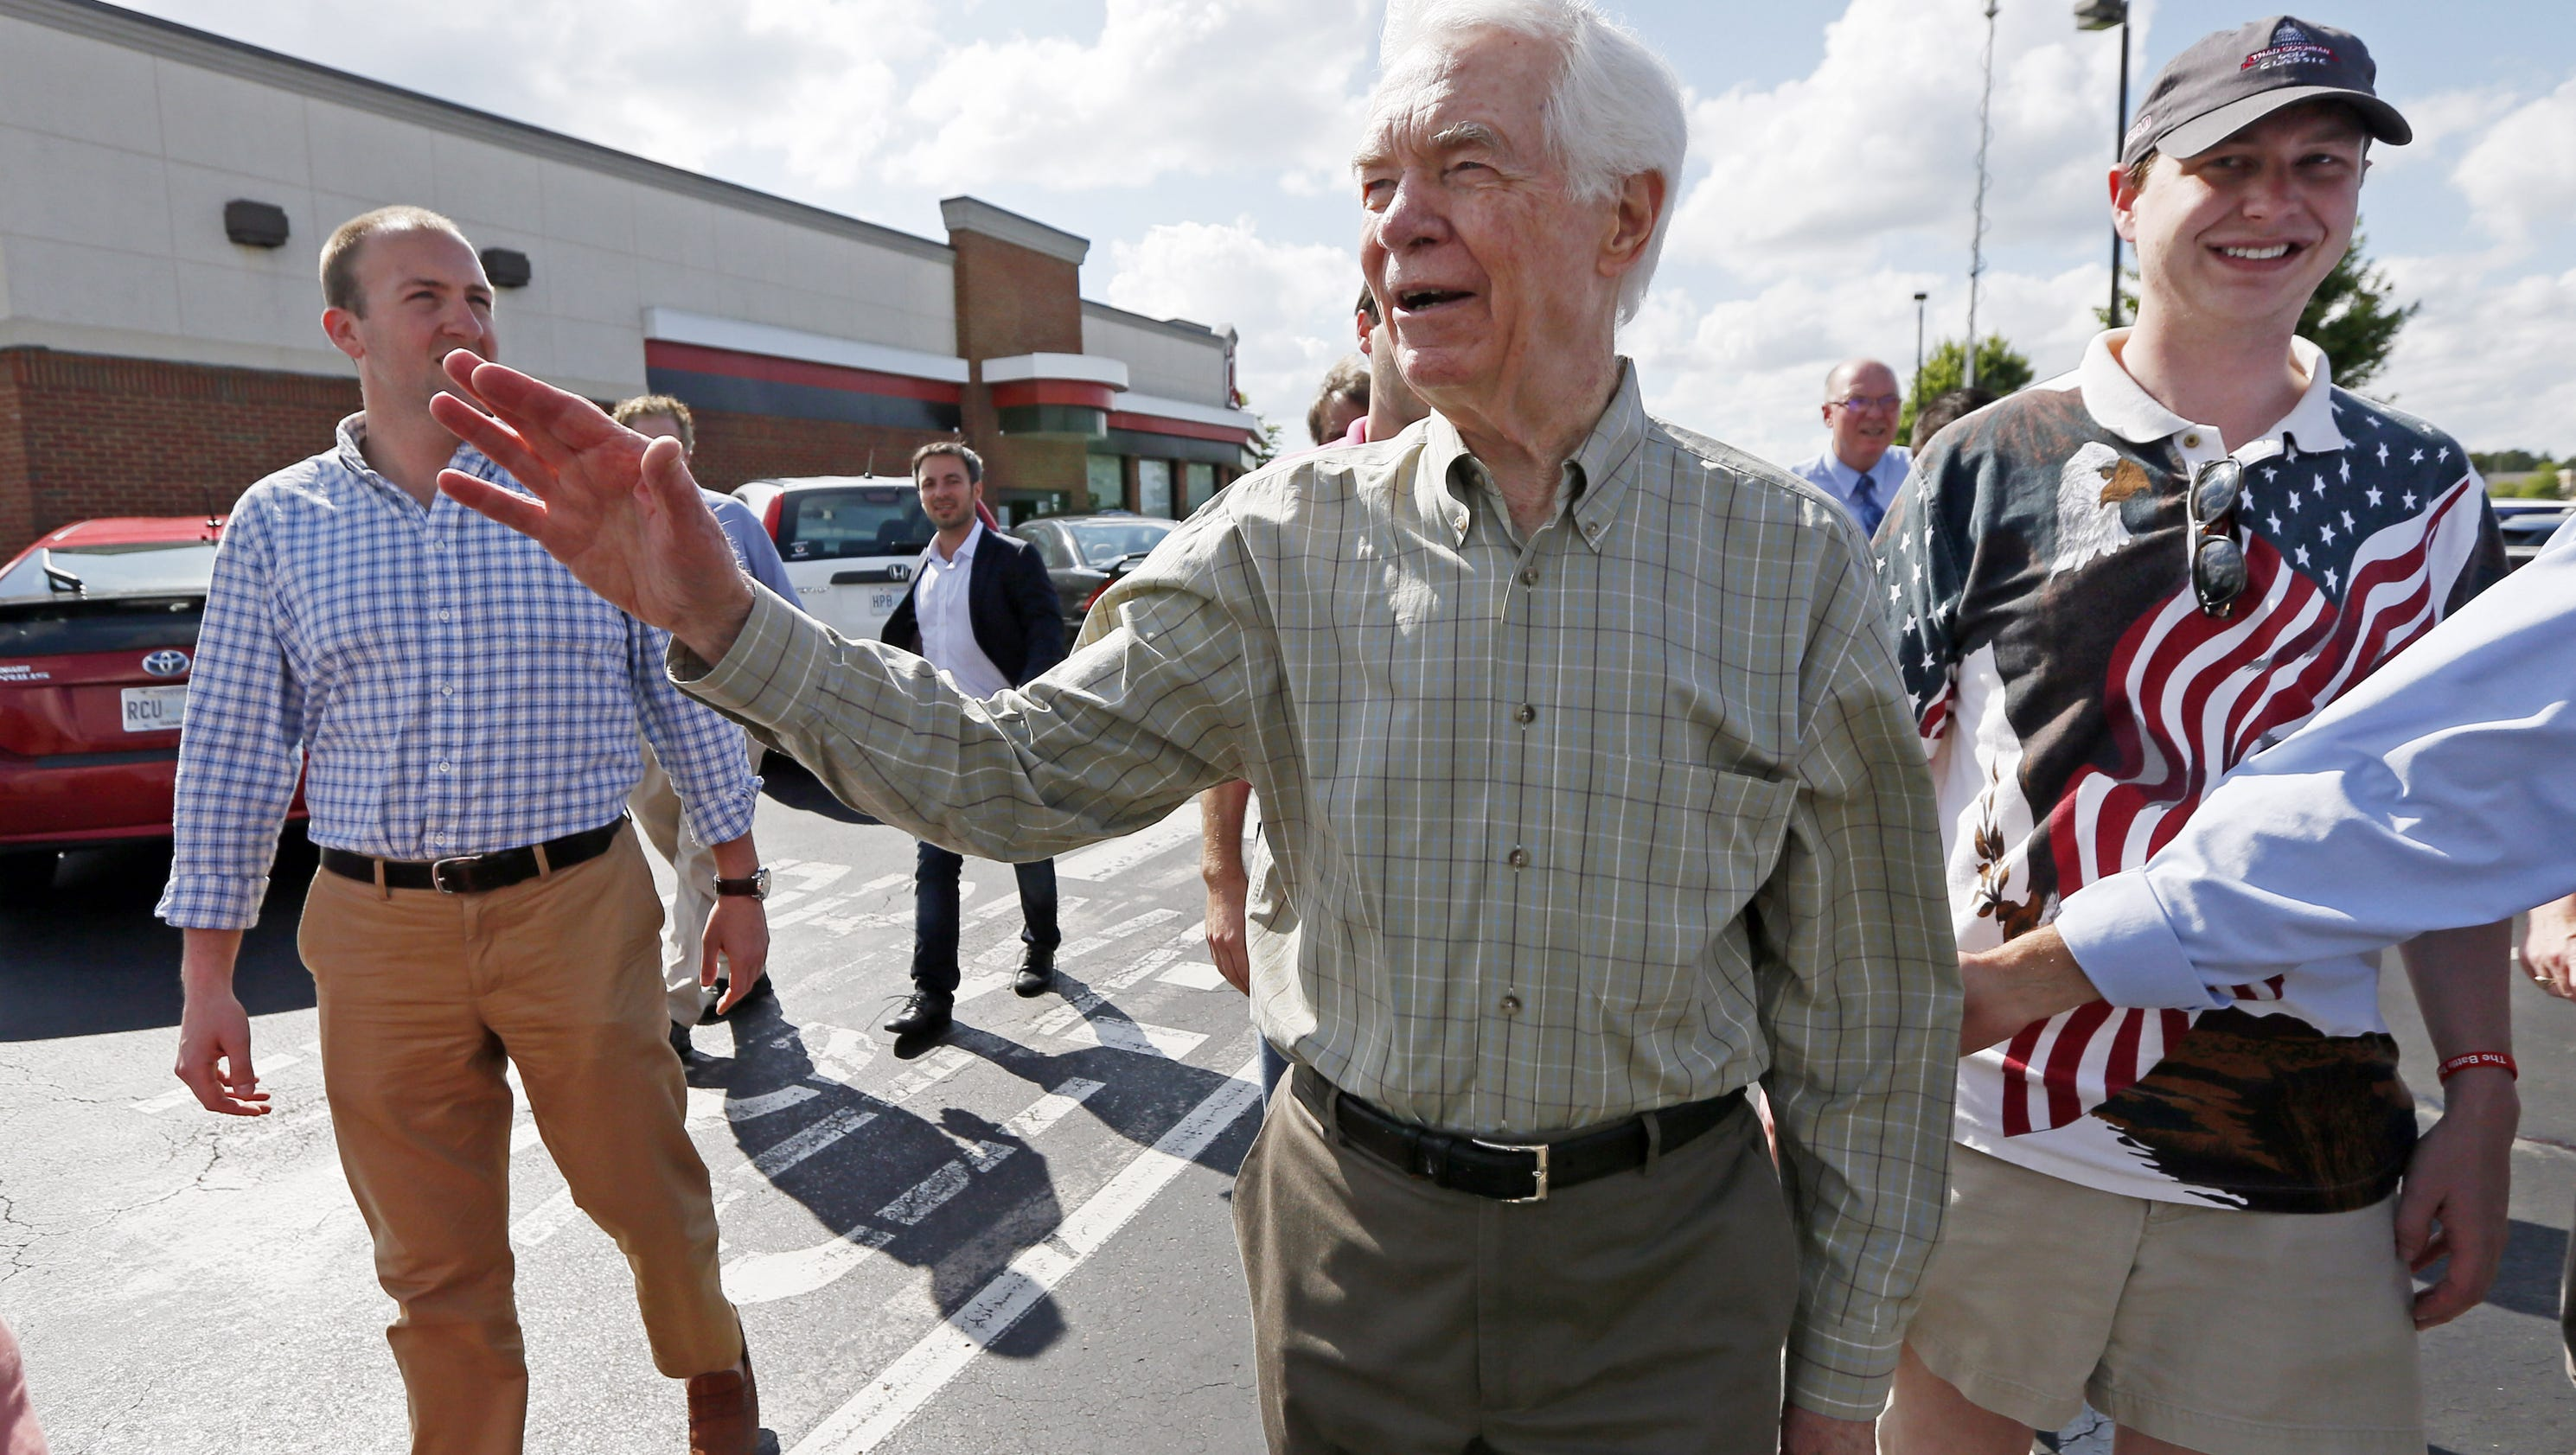 Cochran cited his ongoing health reasons for decision to leave office early.